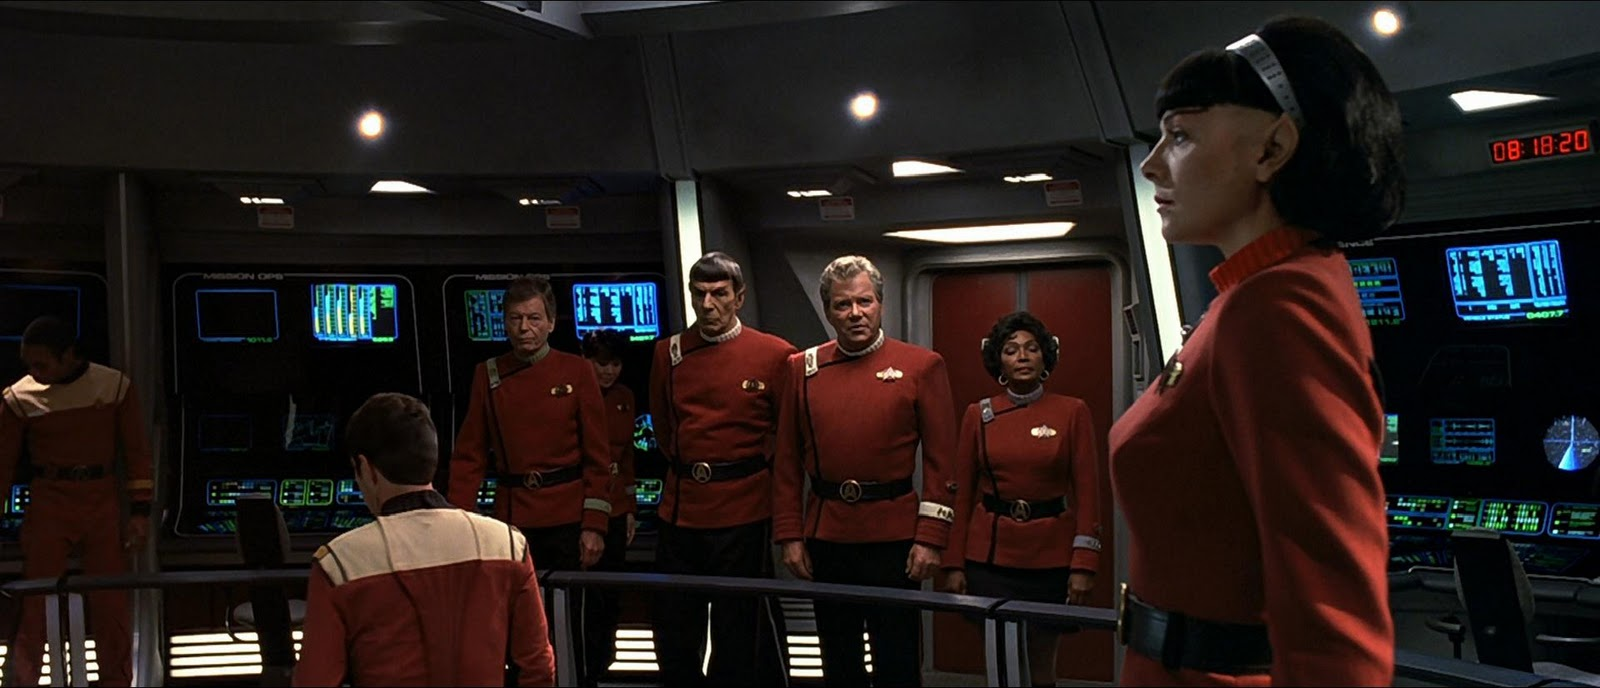 Star Trek VI (1991), which I watched during the month of May